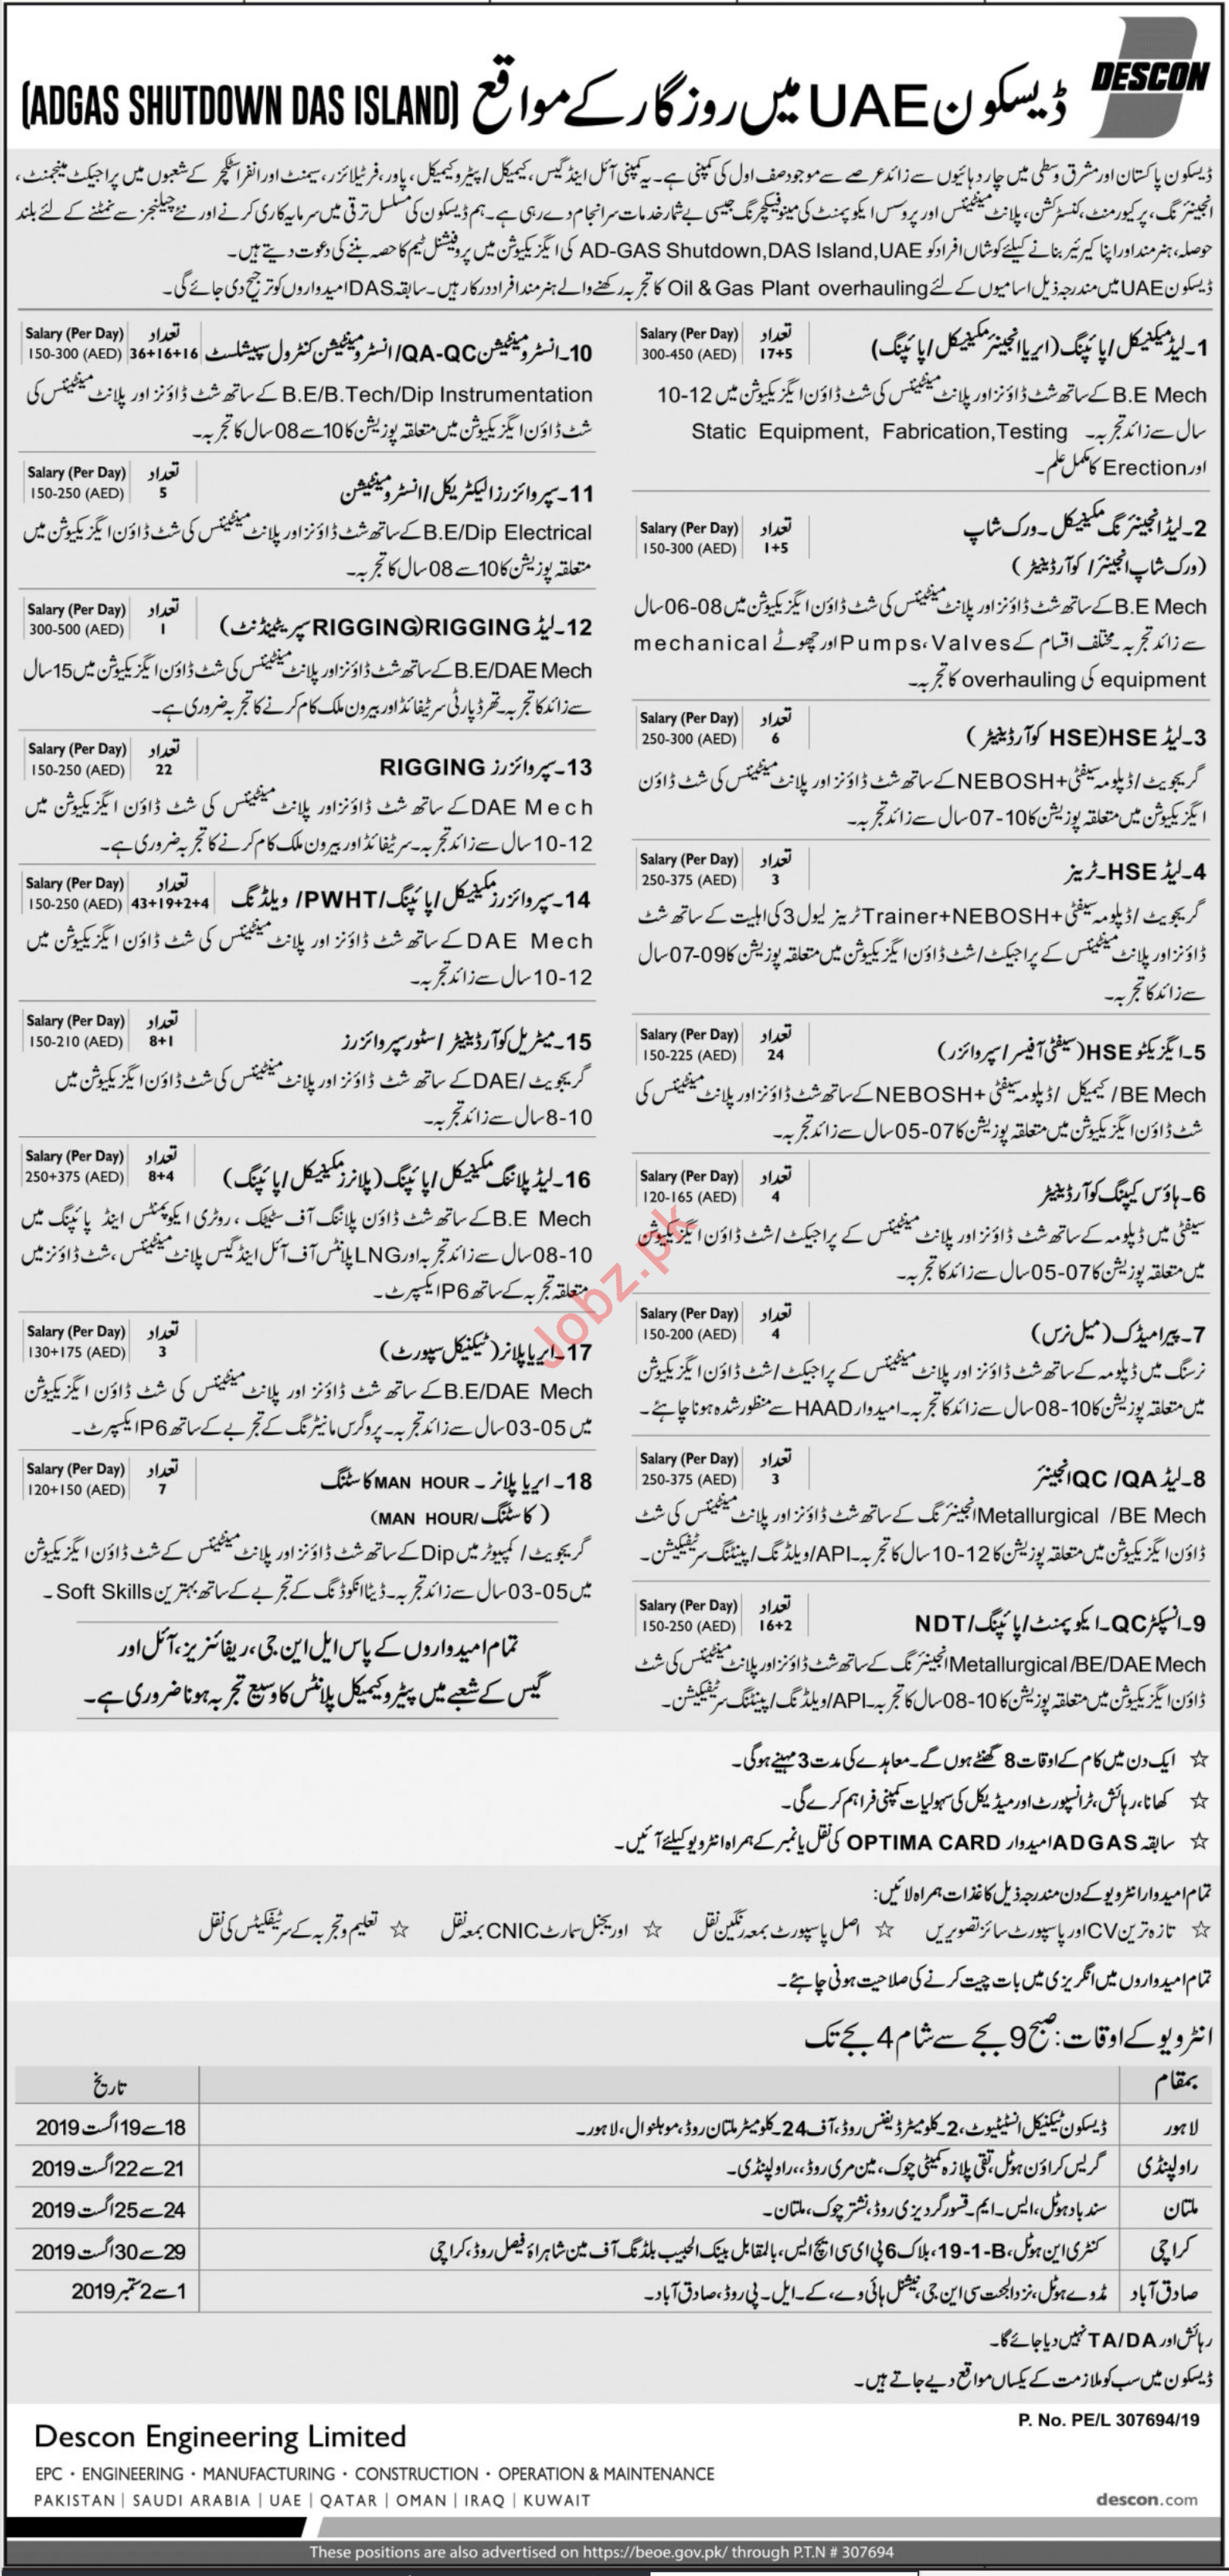 Descon Engineering Limited Technical Jobs 2019 For UAE